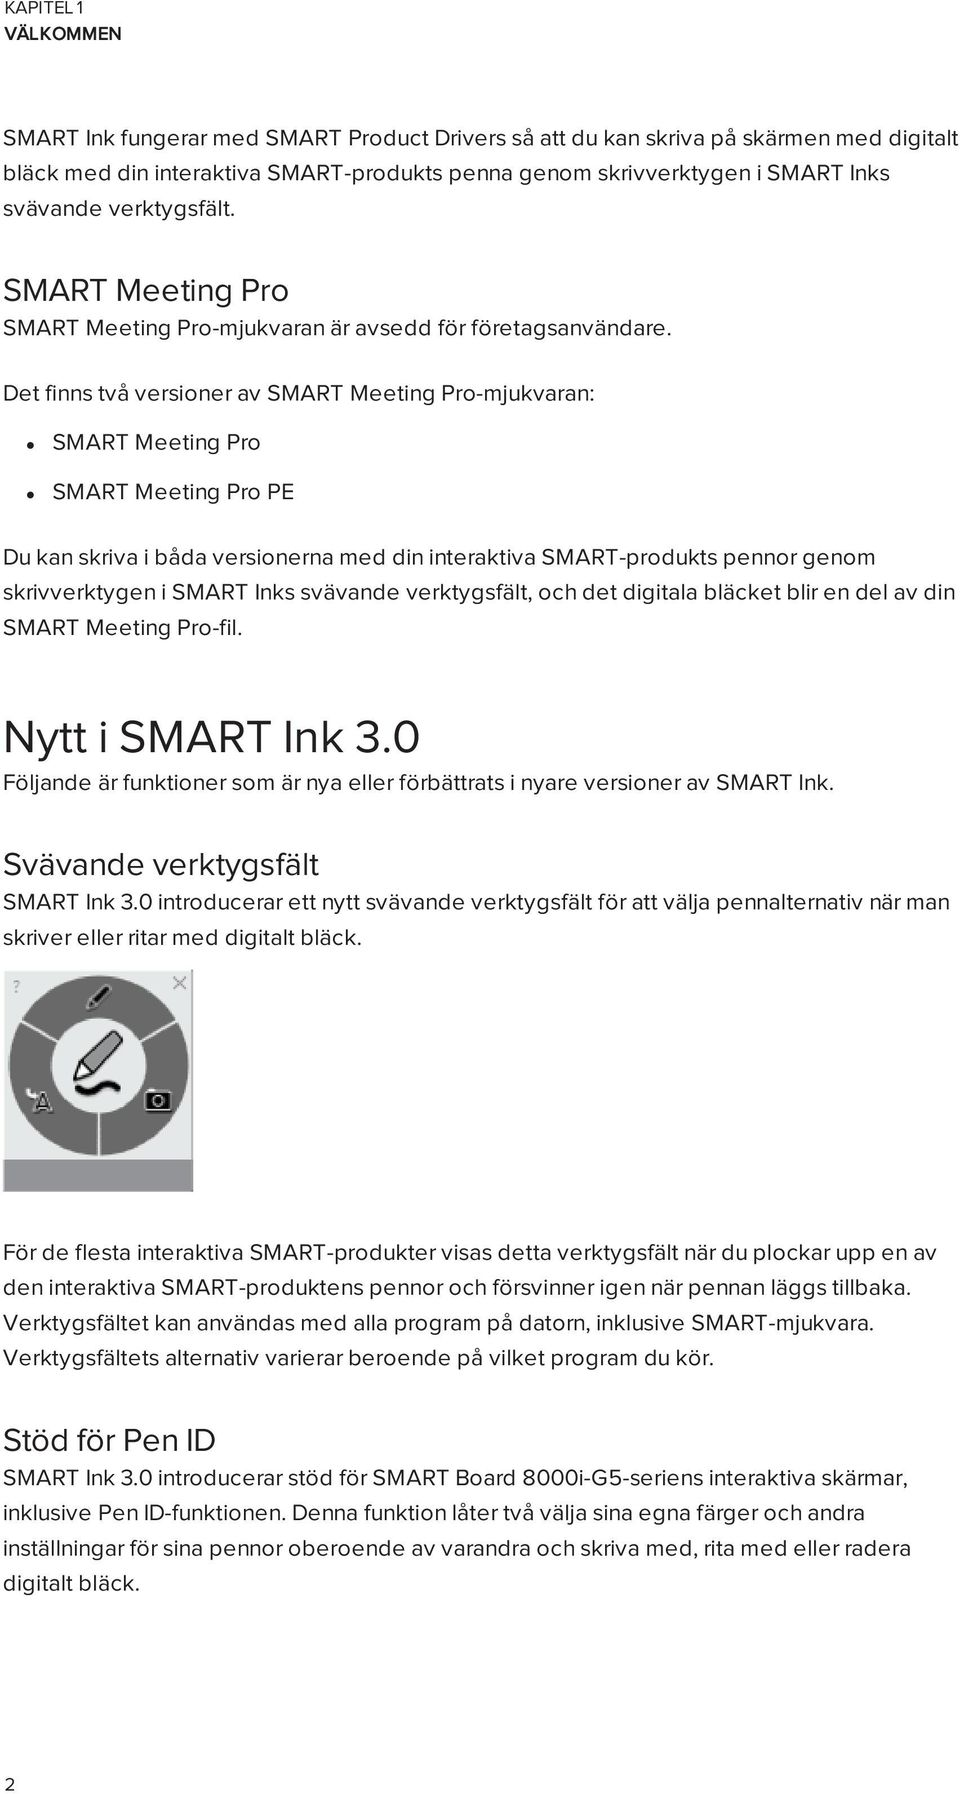 Det finns två versioner av SMART Meeting Pro-mjukvaran: SMART Meeting Pro SMART Meeting Pro PE Du kan skriva i båda versionerna med din interaktiva SMART-produkts pennor genom skrivverktygen i SMART